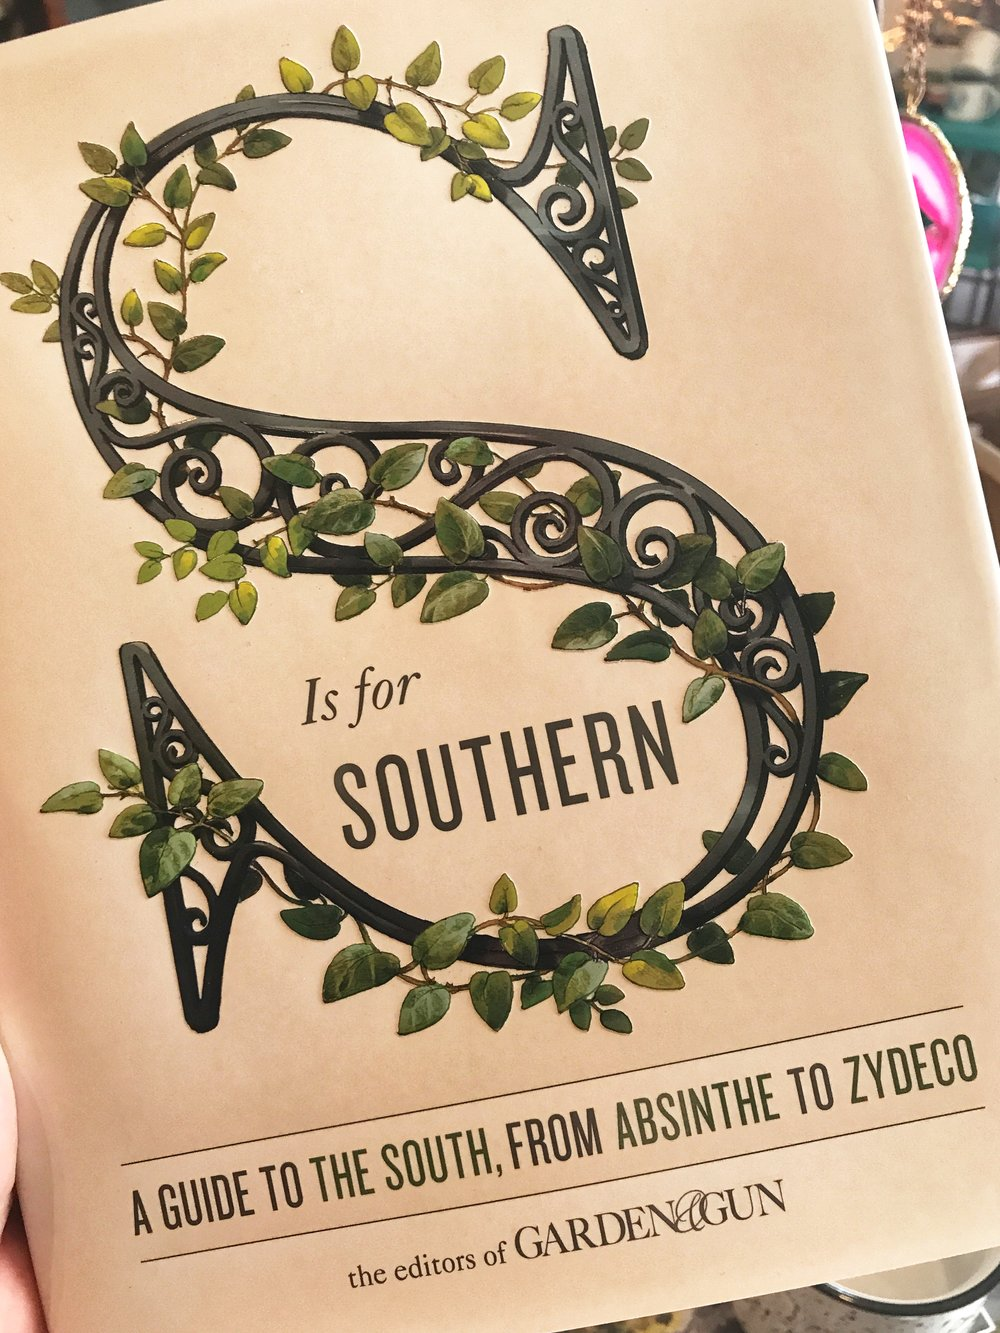 Now, from the editors of Garden & Gun comes this illustrated encyclopedia covering age-old traditions and current culture. S Is for Southern contains nearly five hundred entries spanning every letter of the alphabet, with essays from notable Southern writers including:     •          Roy Blount, Jr., on humidity •          Frances Mayes on the magnolia •          Jessica B. Harris on field peas •          Rick Bragg on Harper Lee •          Jon Meacham on the Civil War •          Allison Glock on Dolly Parton •          Randall Kenan on Edna Lewis •          The Lee Brothers on boiled peanuts •          Jonathan Miles on Larry Brown •          Julia Reed on the Delta